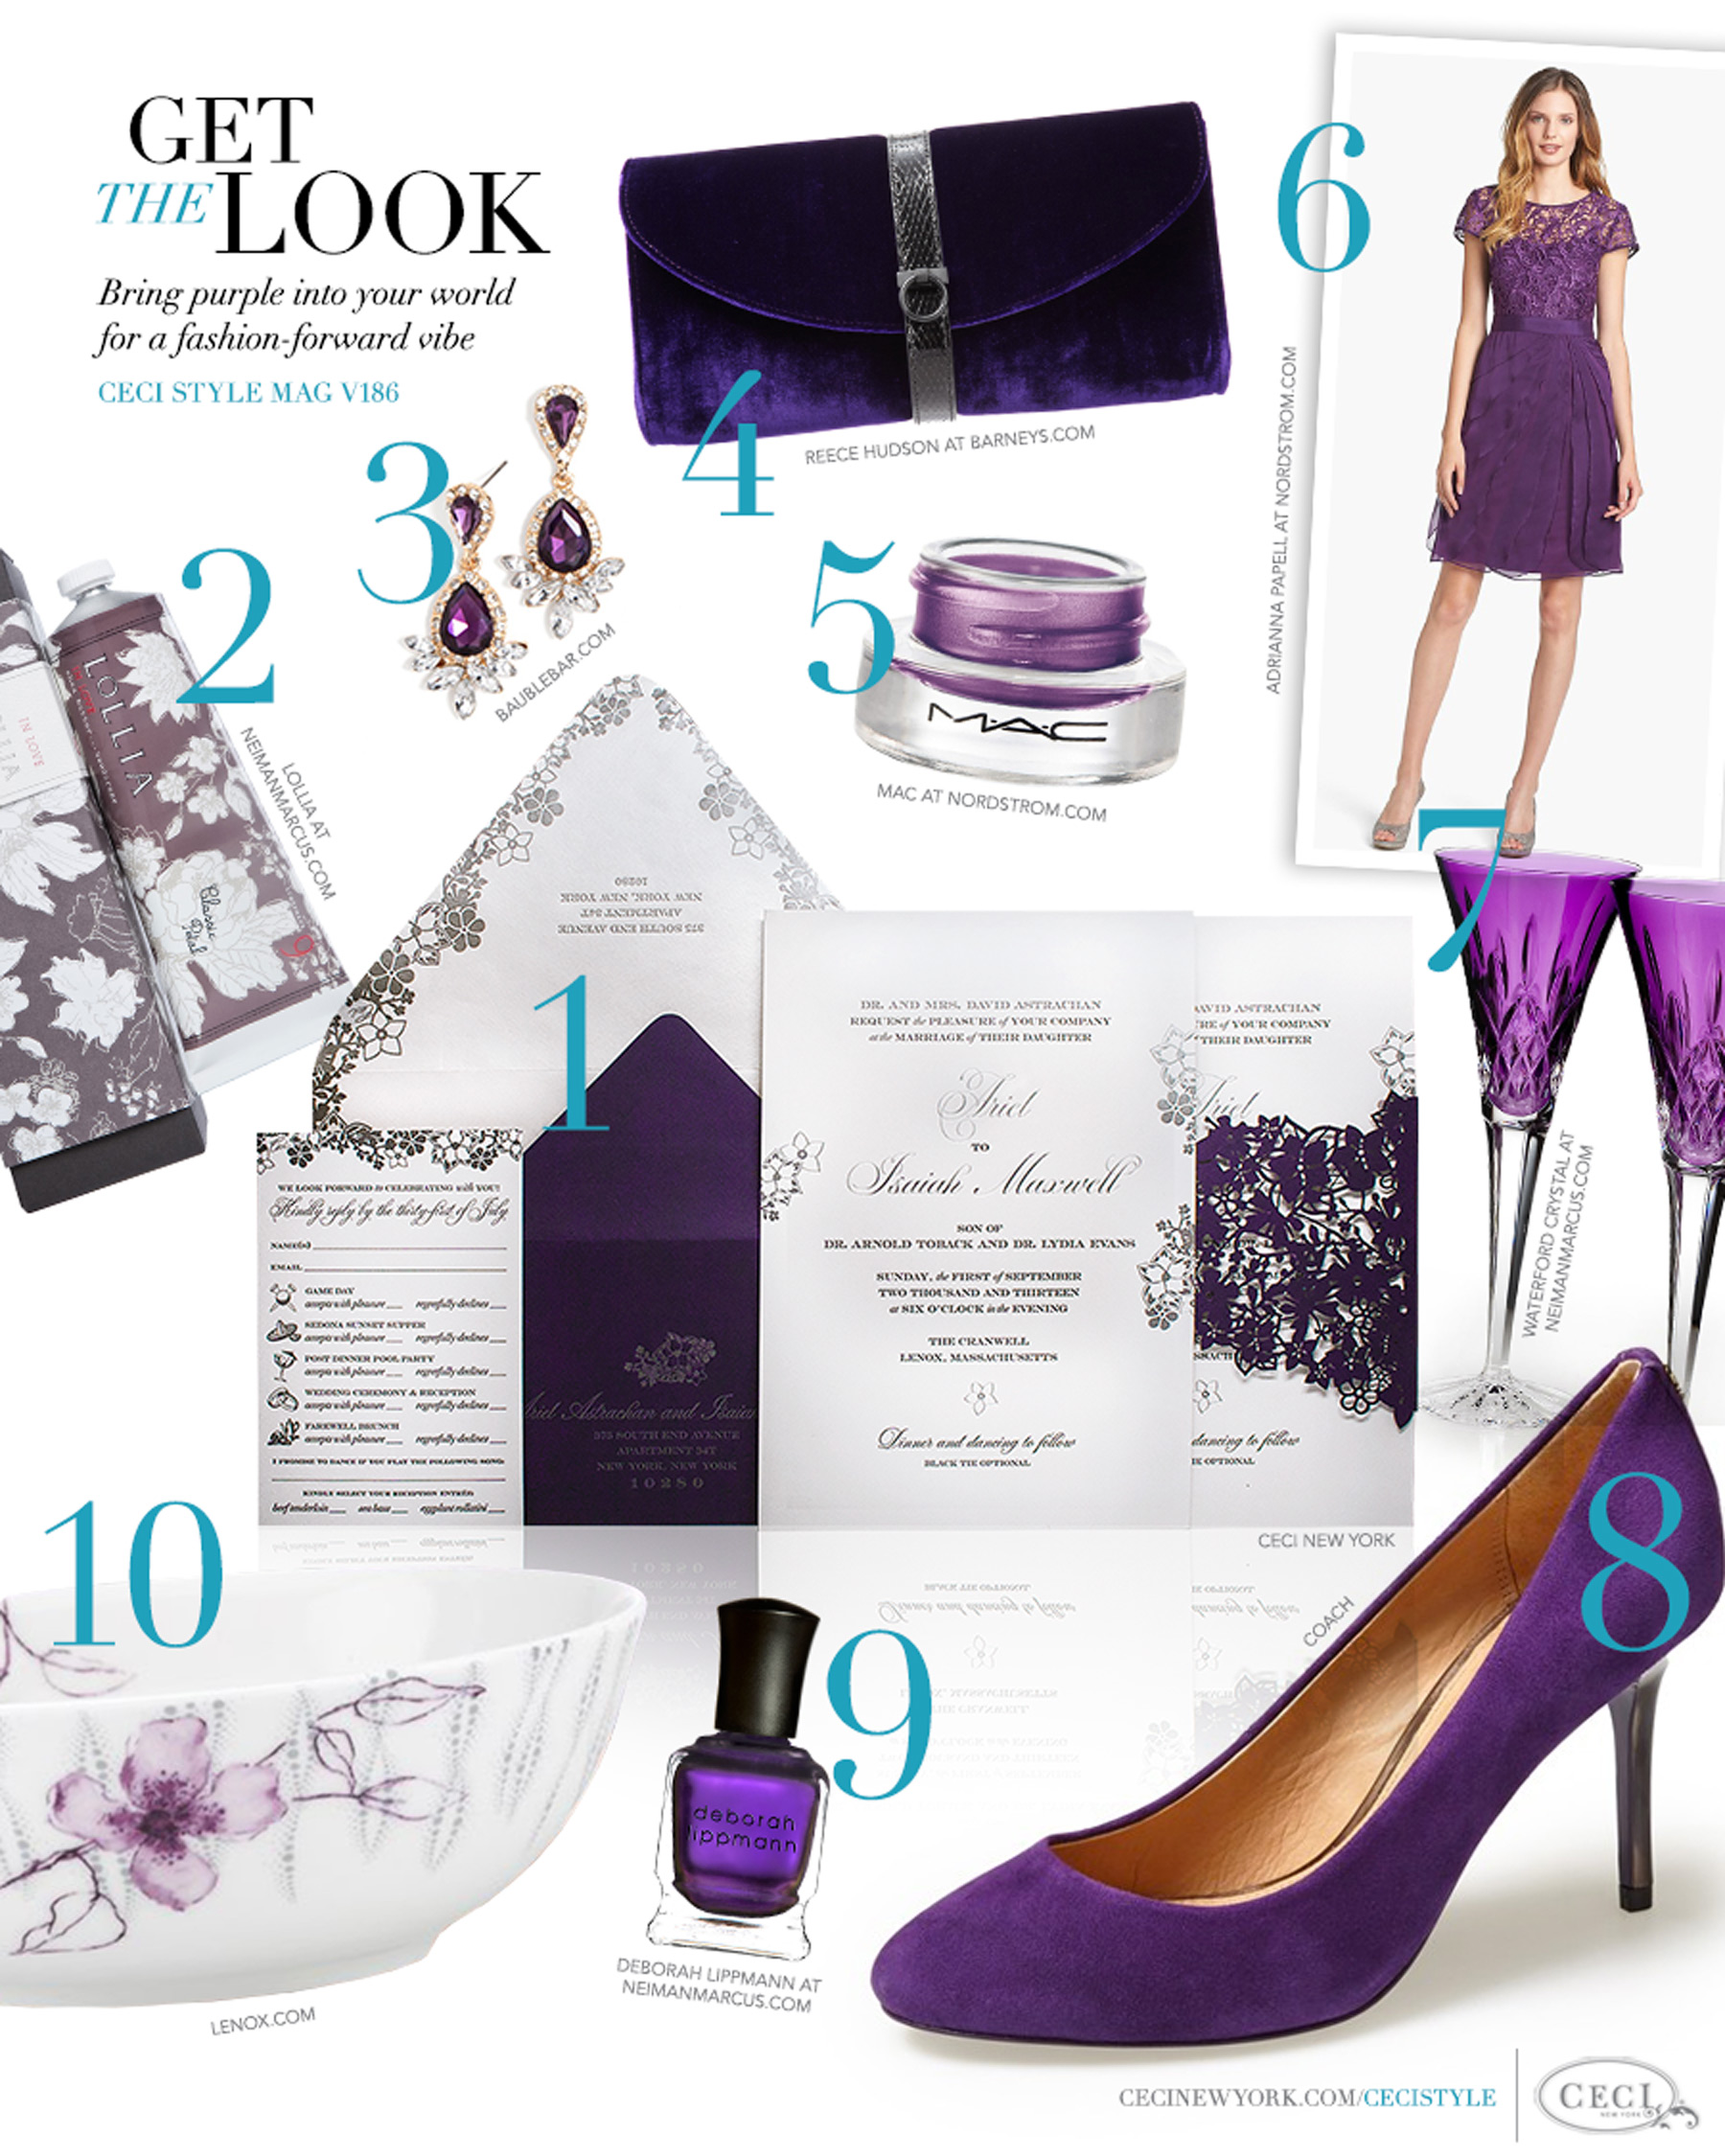 CeciStyle Magazine v186: Get The Look - Purple Passion - Bring purple into your world for a fashion-forward vibe - Luxury Wedding Invitations by Ceci New York - mac, beauty, invitations, ceci new york, purple, bauble bar, lollia, home goods, reece hudson, adrianna papell, waterford crystal, coach, shoes, deborah lippmann, lenox